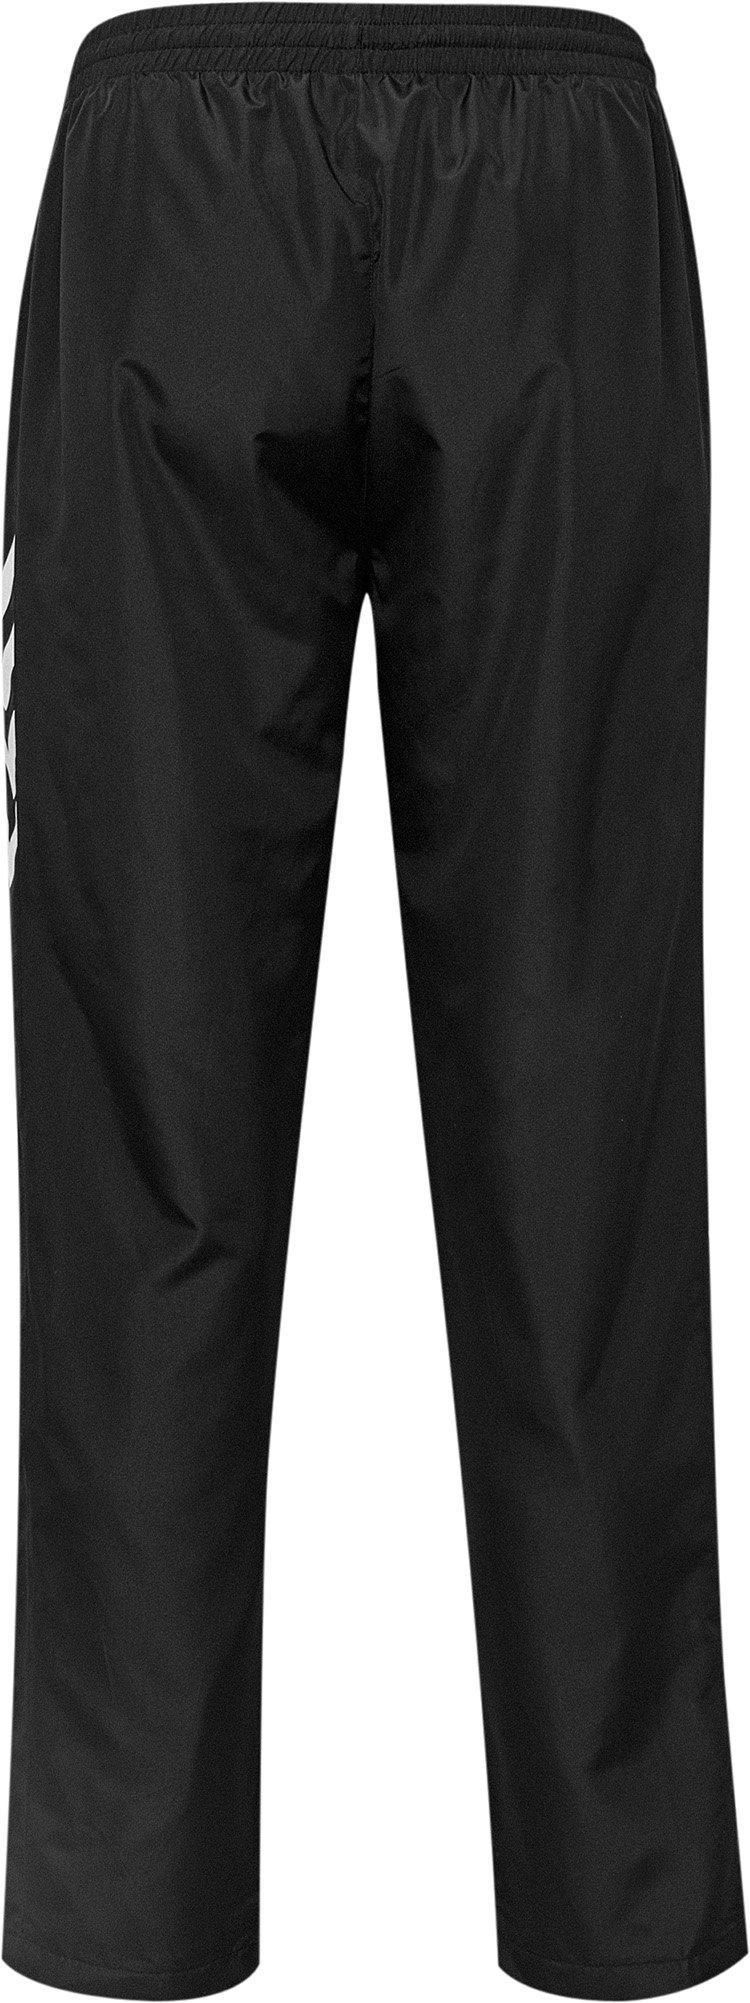 hummel Core Micro Warm Up Pants-Soccer Command